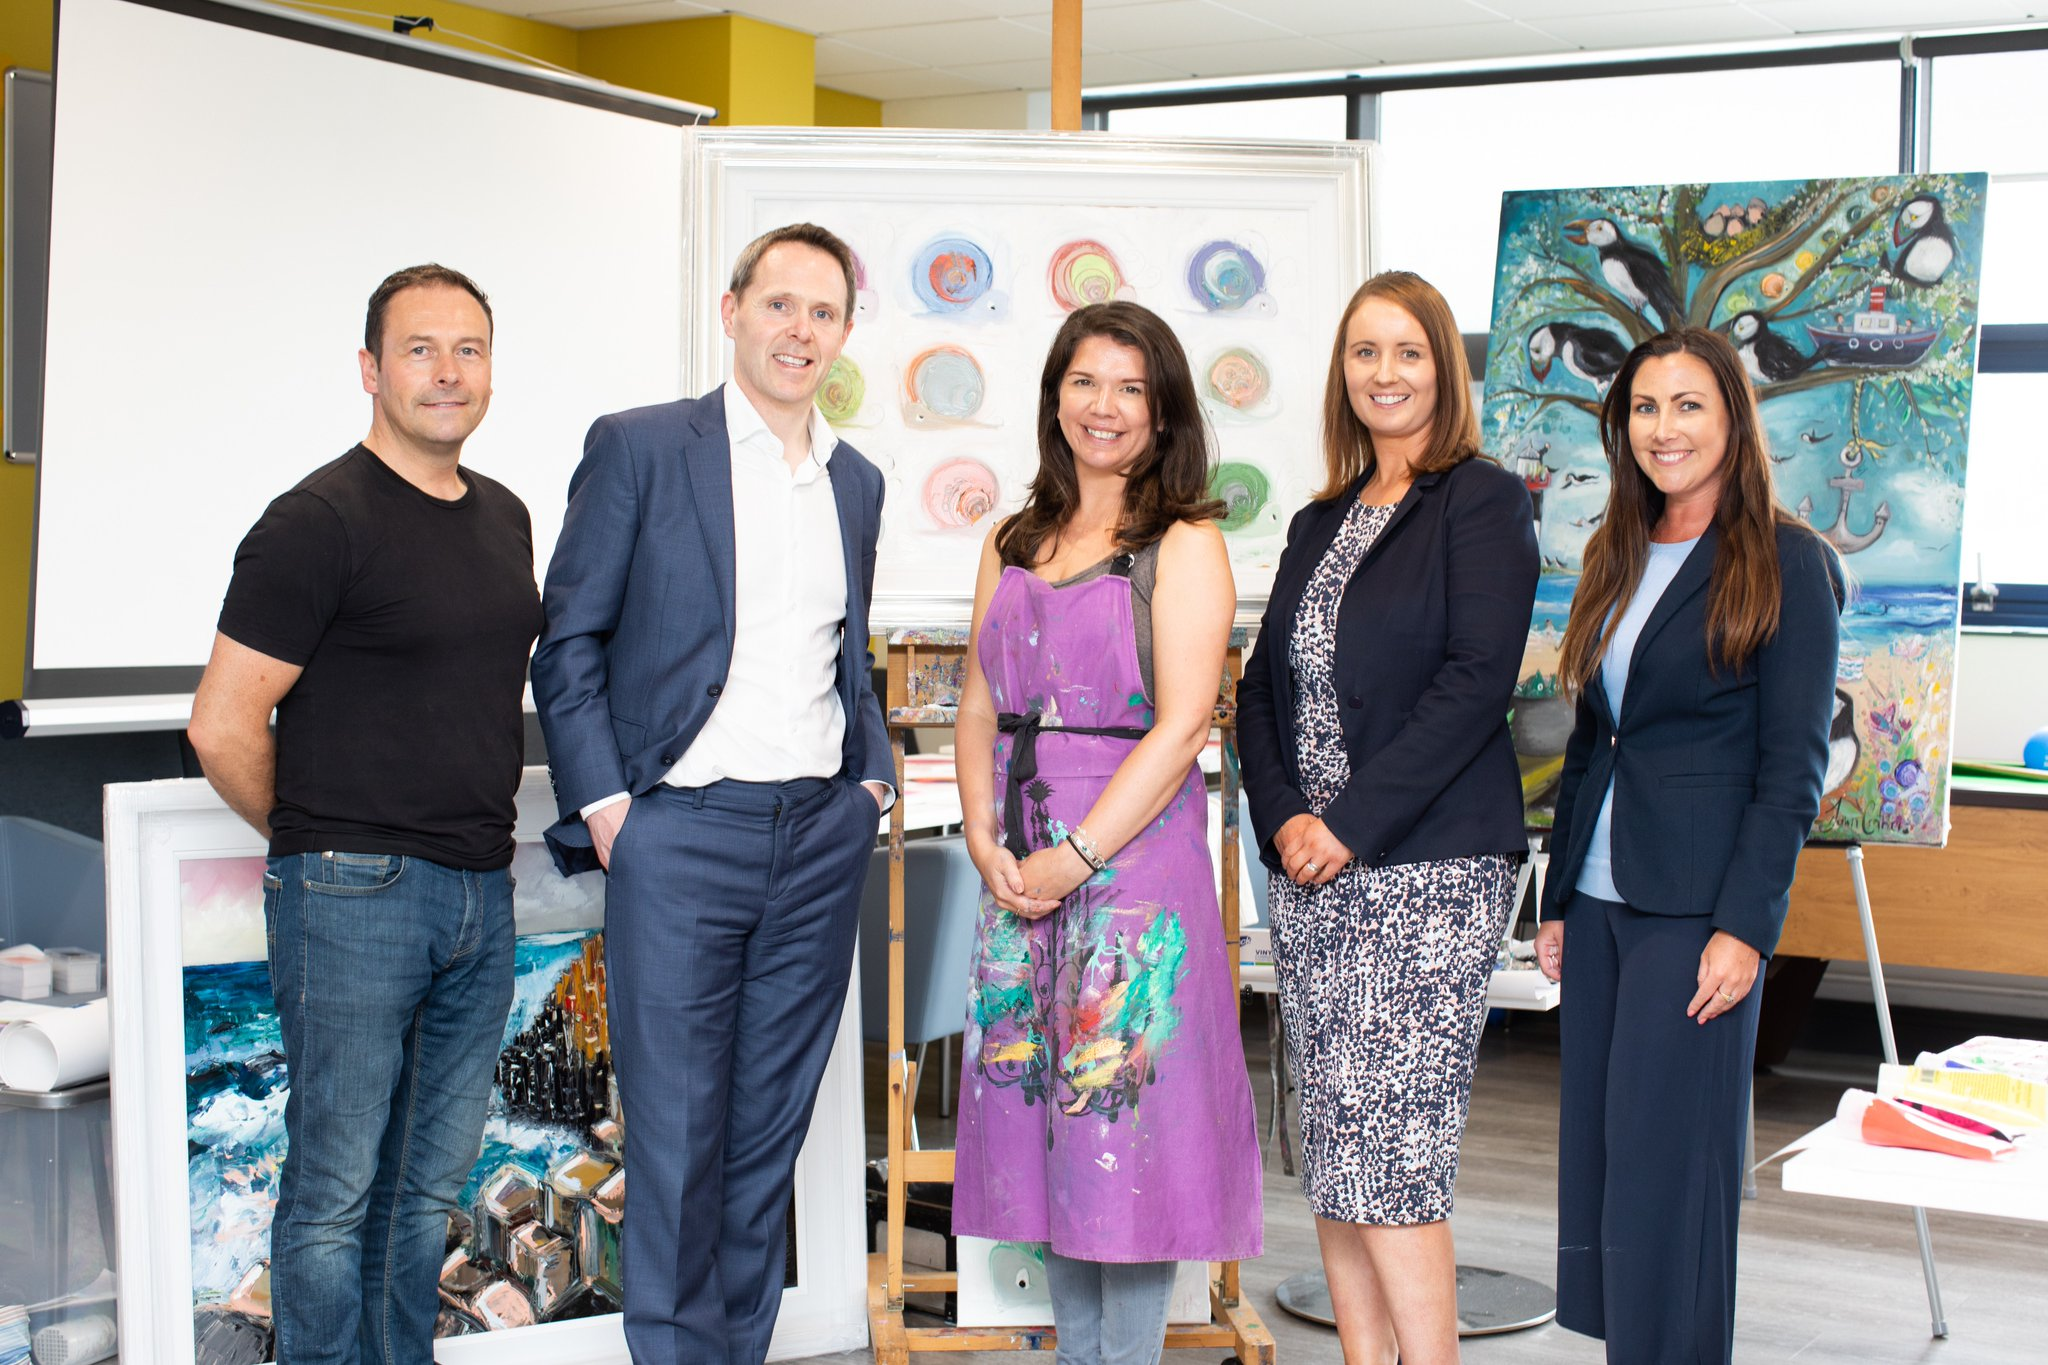 Artist Stephen Whalley; Michael Neil, Head of Belfast Office, ALG; Artist Dawn Crothers; Jill Michael, HR Lead, ALG Belfast; and Glenda McStravick, Marketing Manager, ALG Belfast